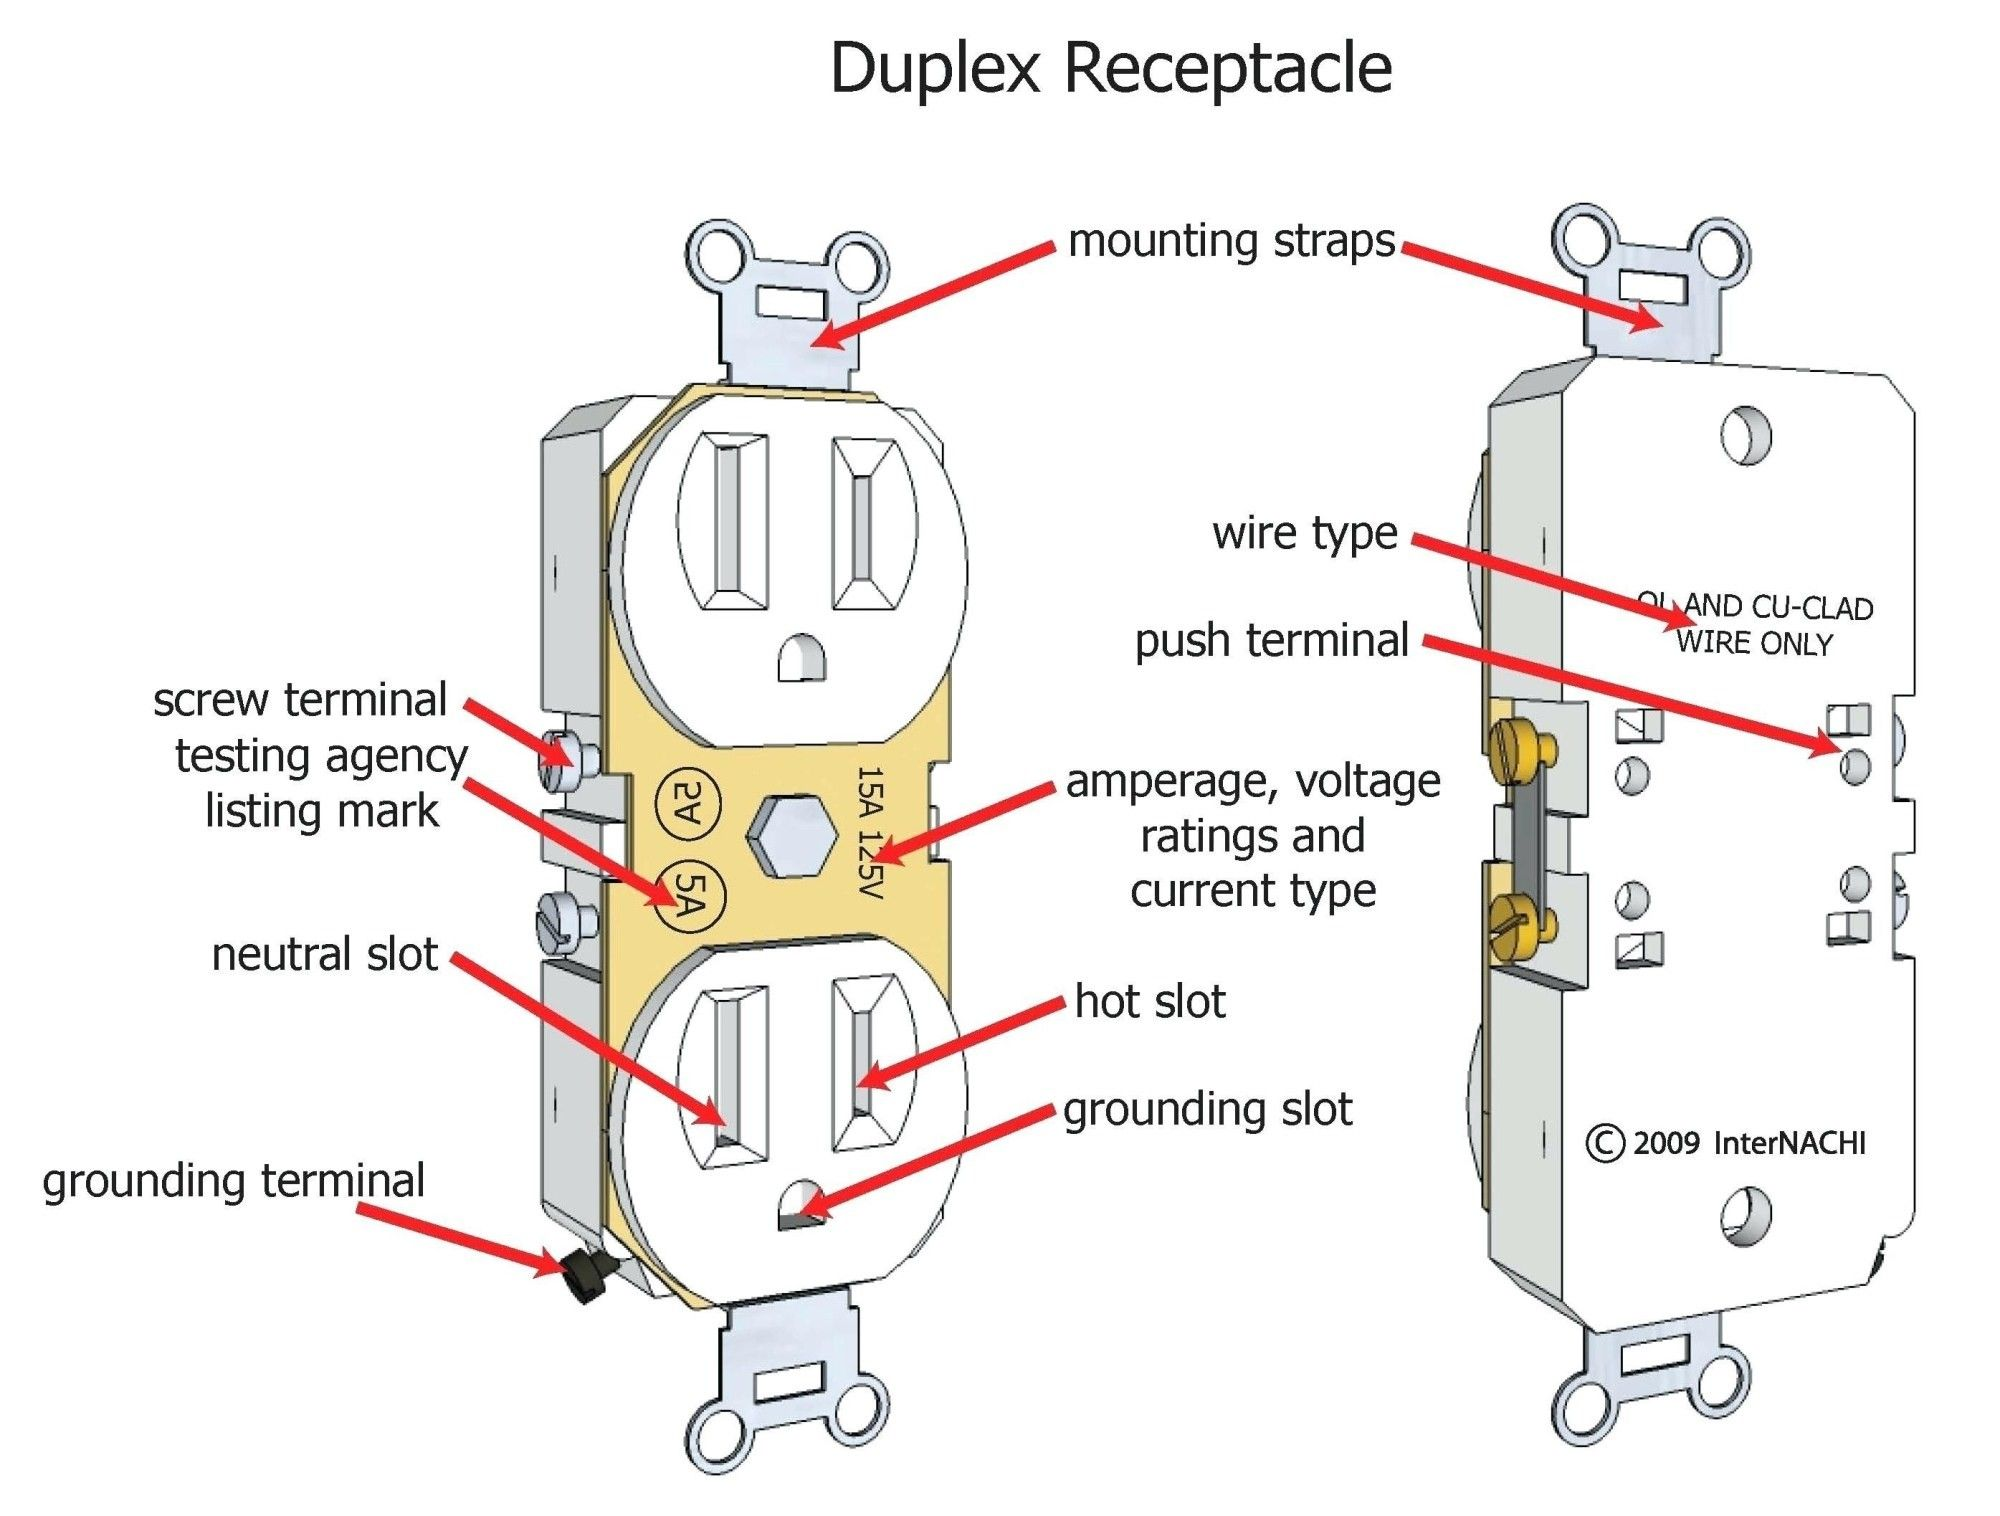 duplex switch wiring diagram wiring diagram Basic Electrical Wiring Diagrams